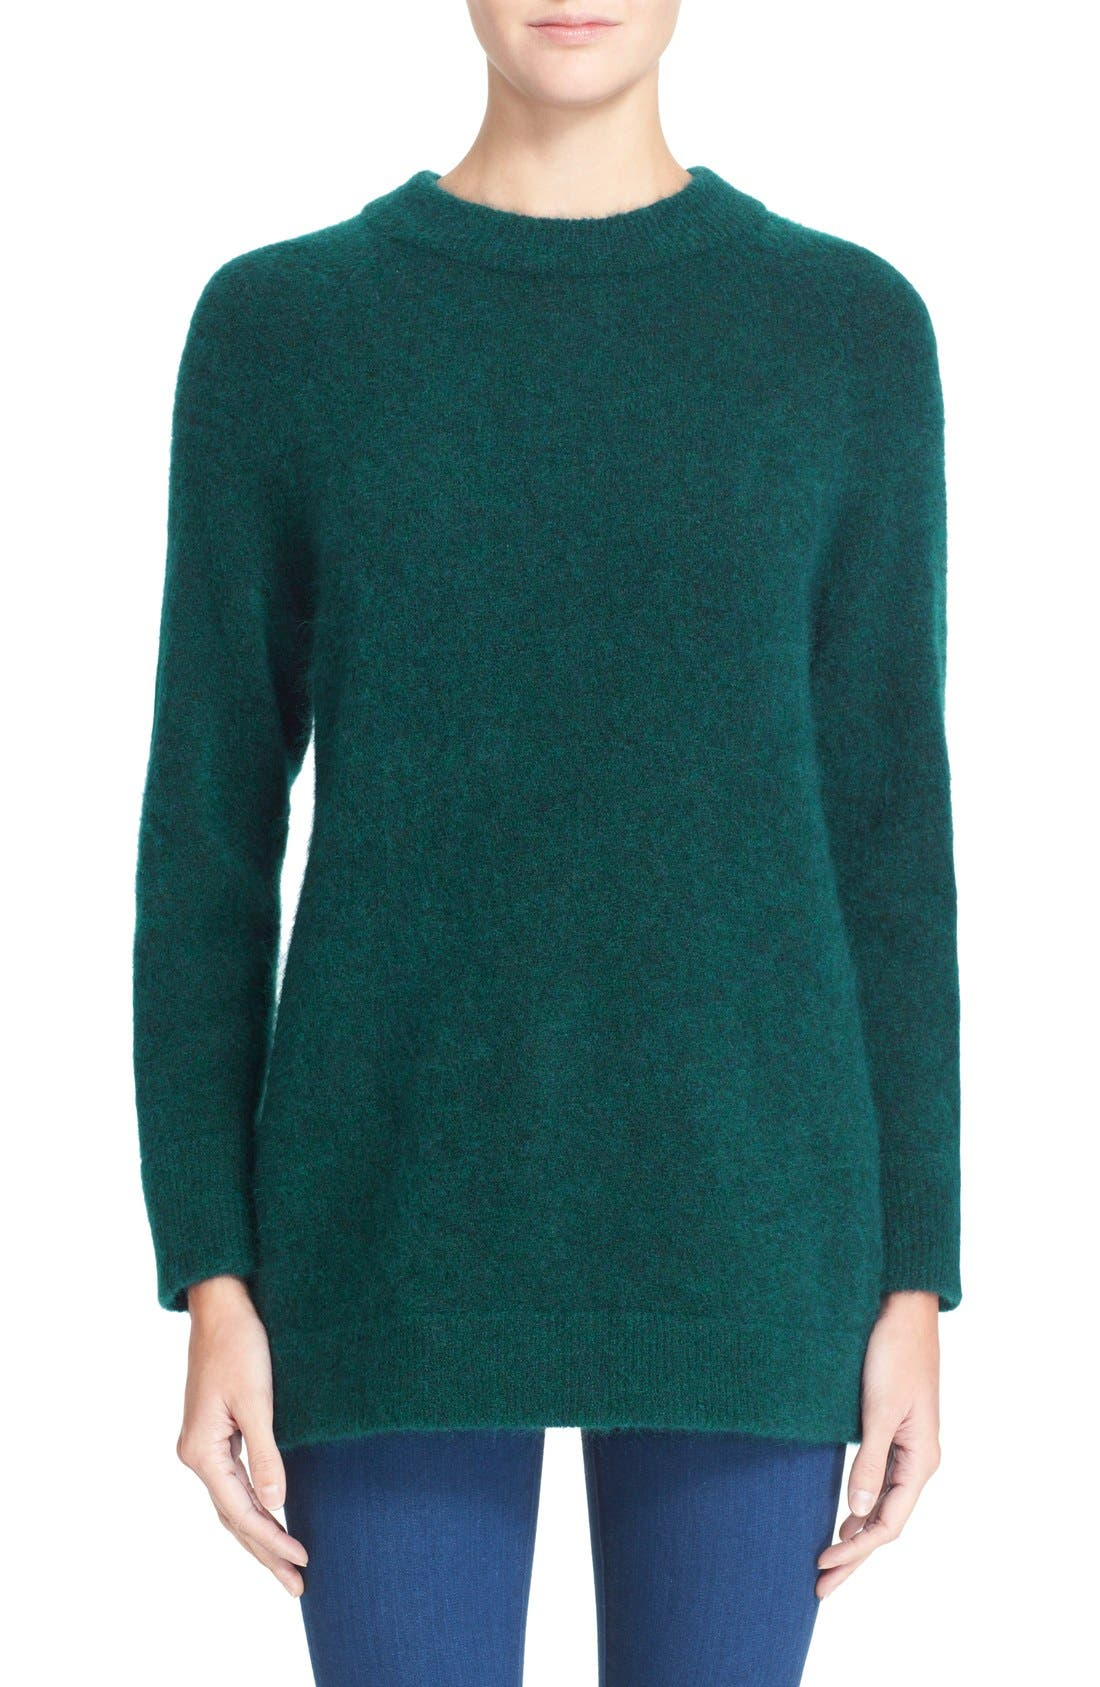 Alternate Image 1 Selected - AYR 'The Animal' Fuzzy Pullover